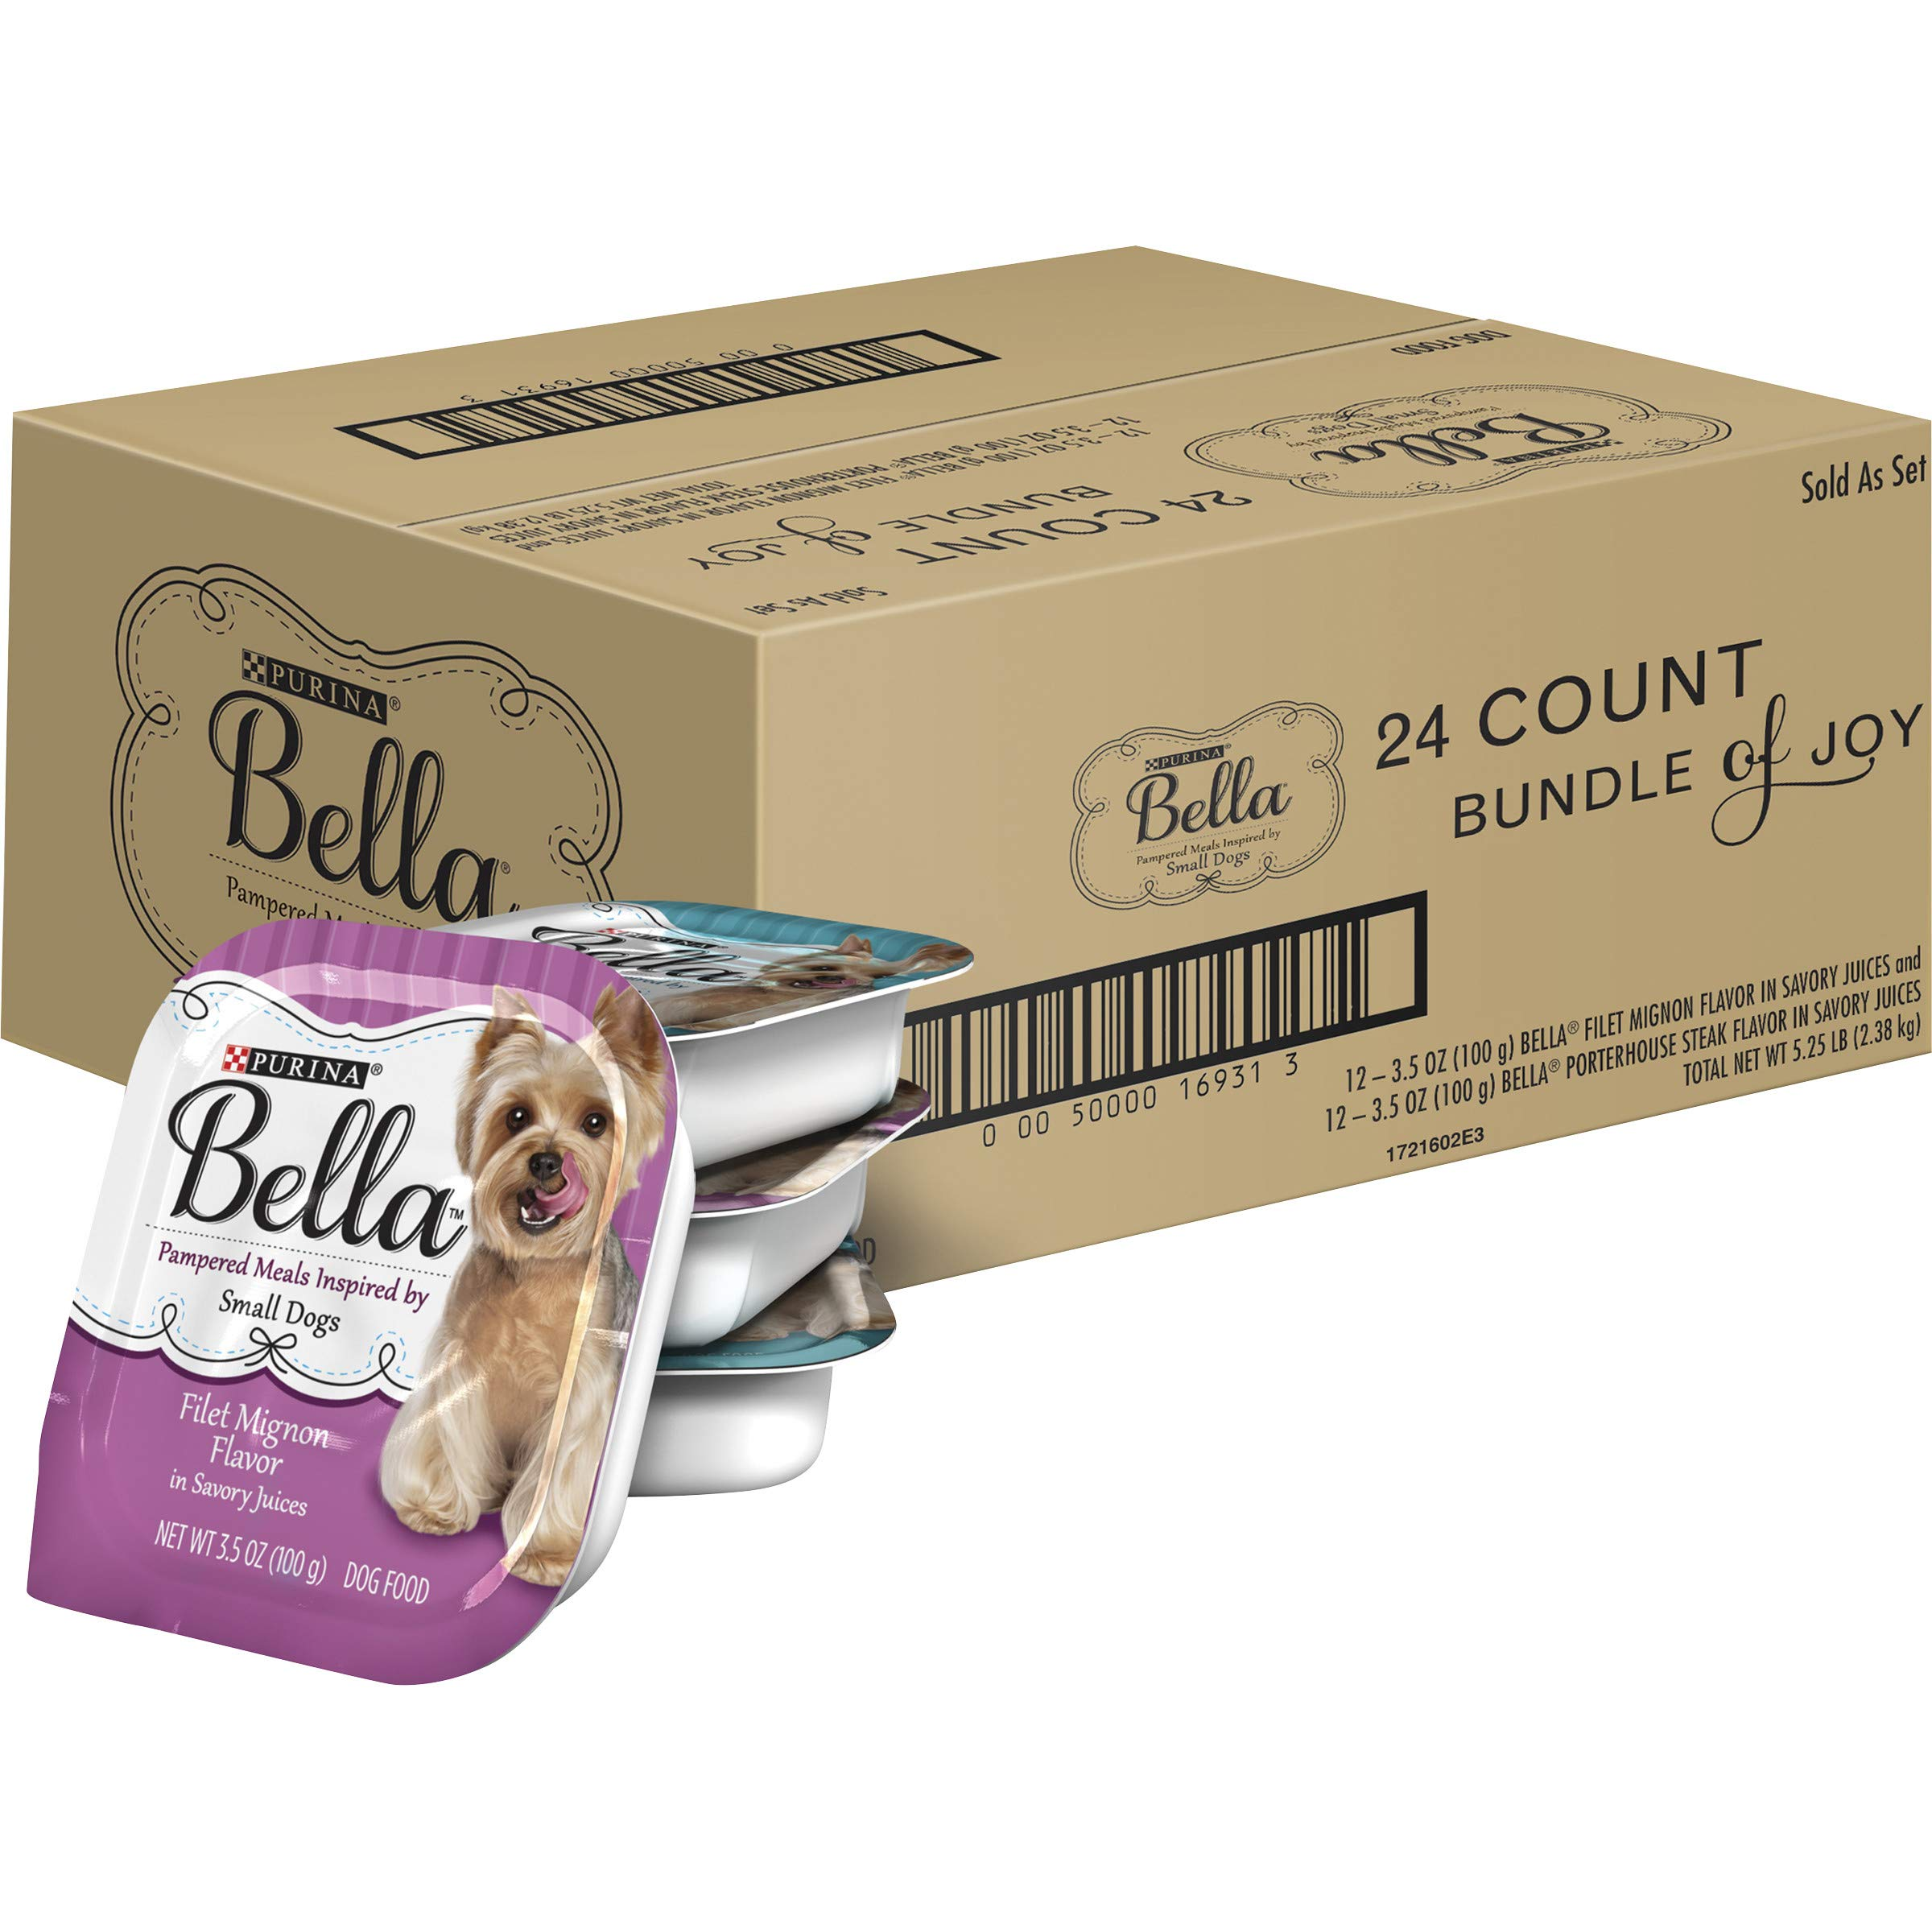 Purina Bella Small Breed Pate Wet Dog Food Variety Pack, Filet Mignon & Porterhouse Steak in Juices - (24) 3.5 oz. Trays by Purina Bella